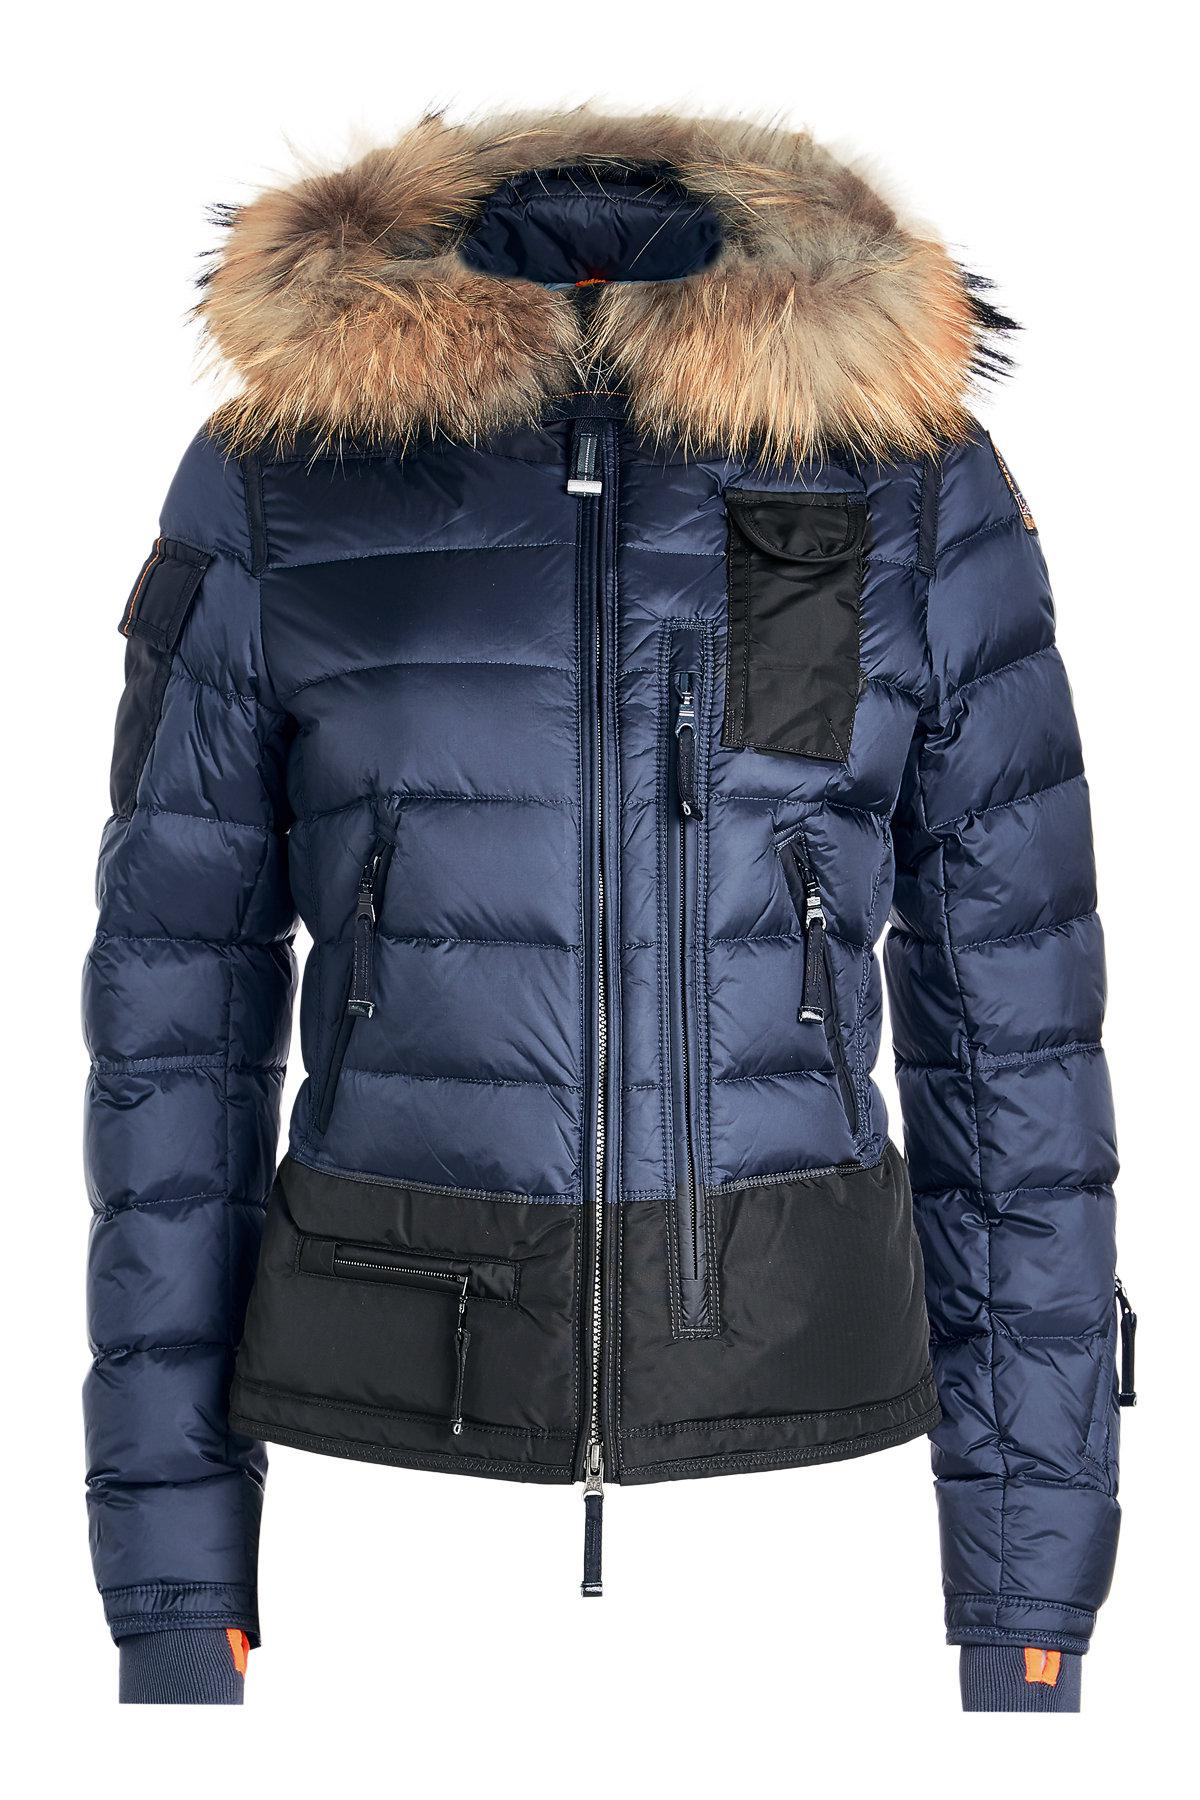 skimaster quilted down jacket with fur trimmed hood